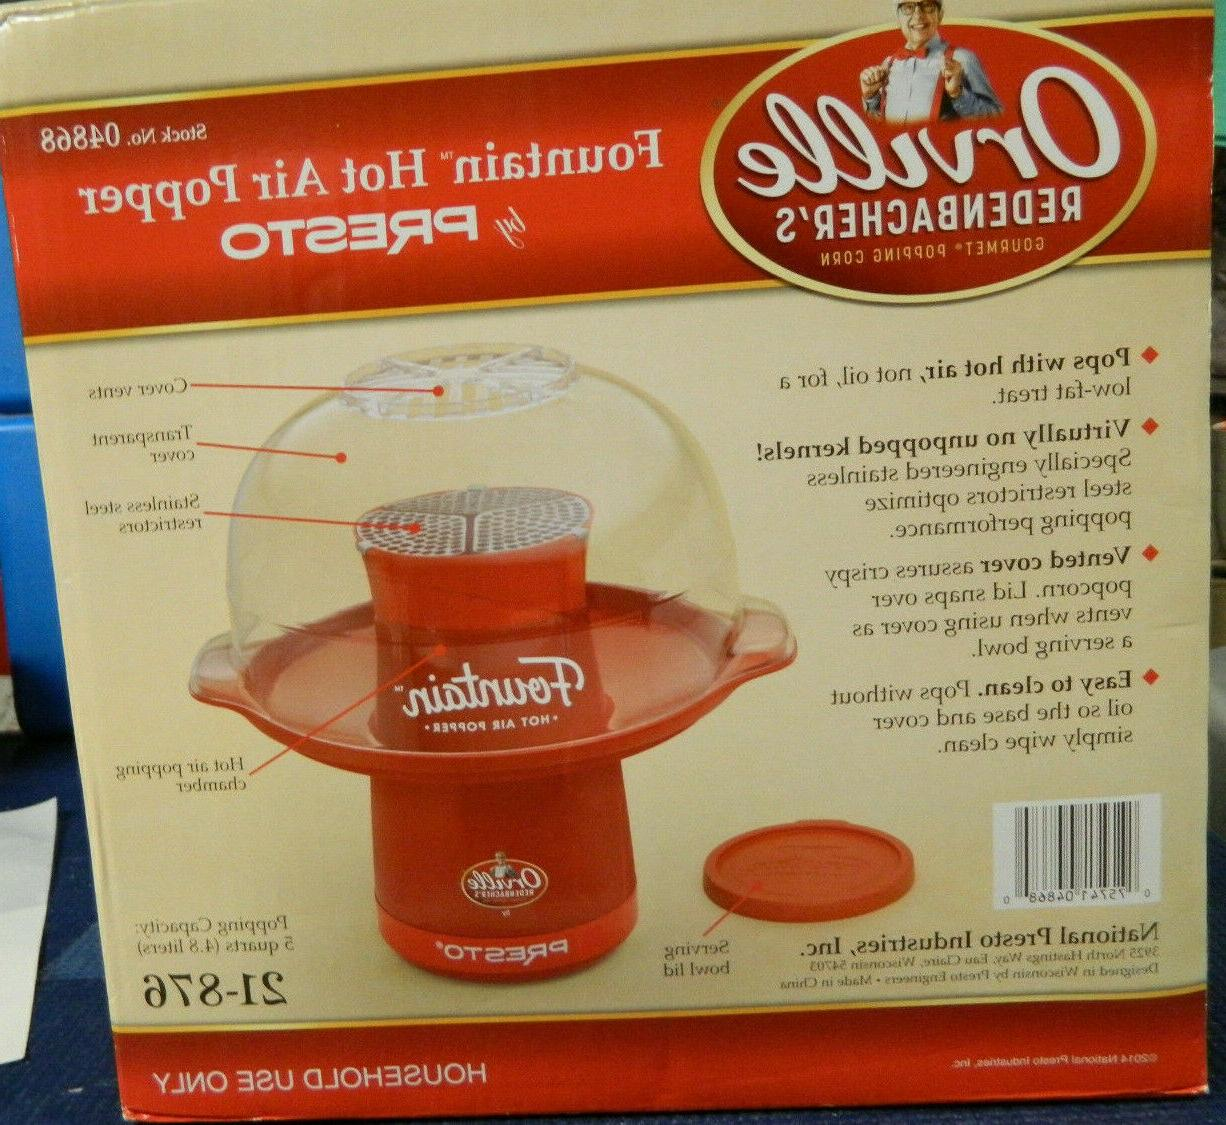 NEW REDENBACHER'S HOT POPPER PRESTO